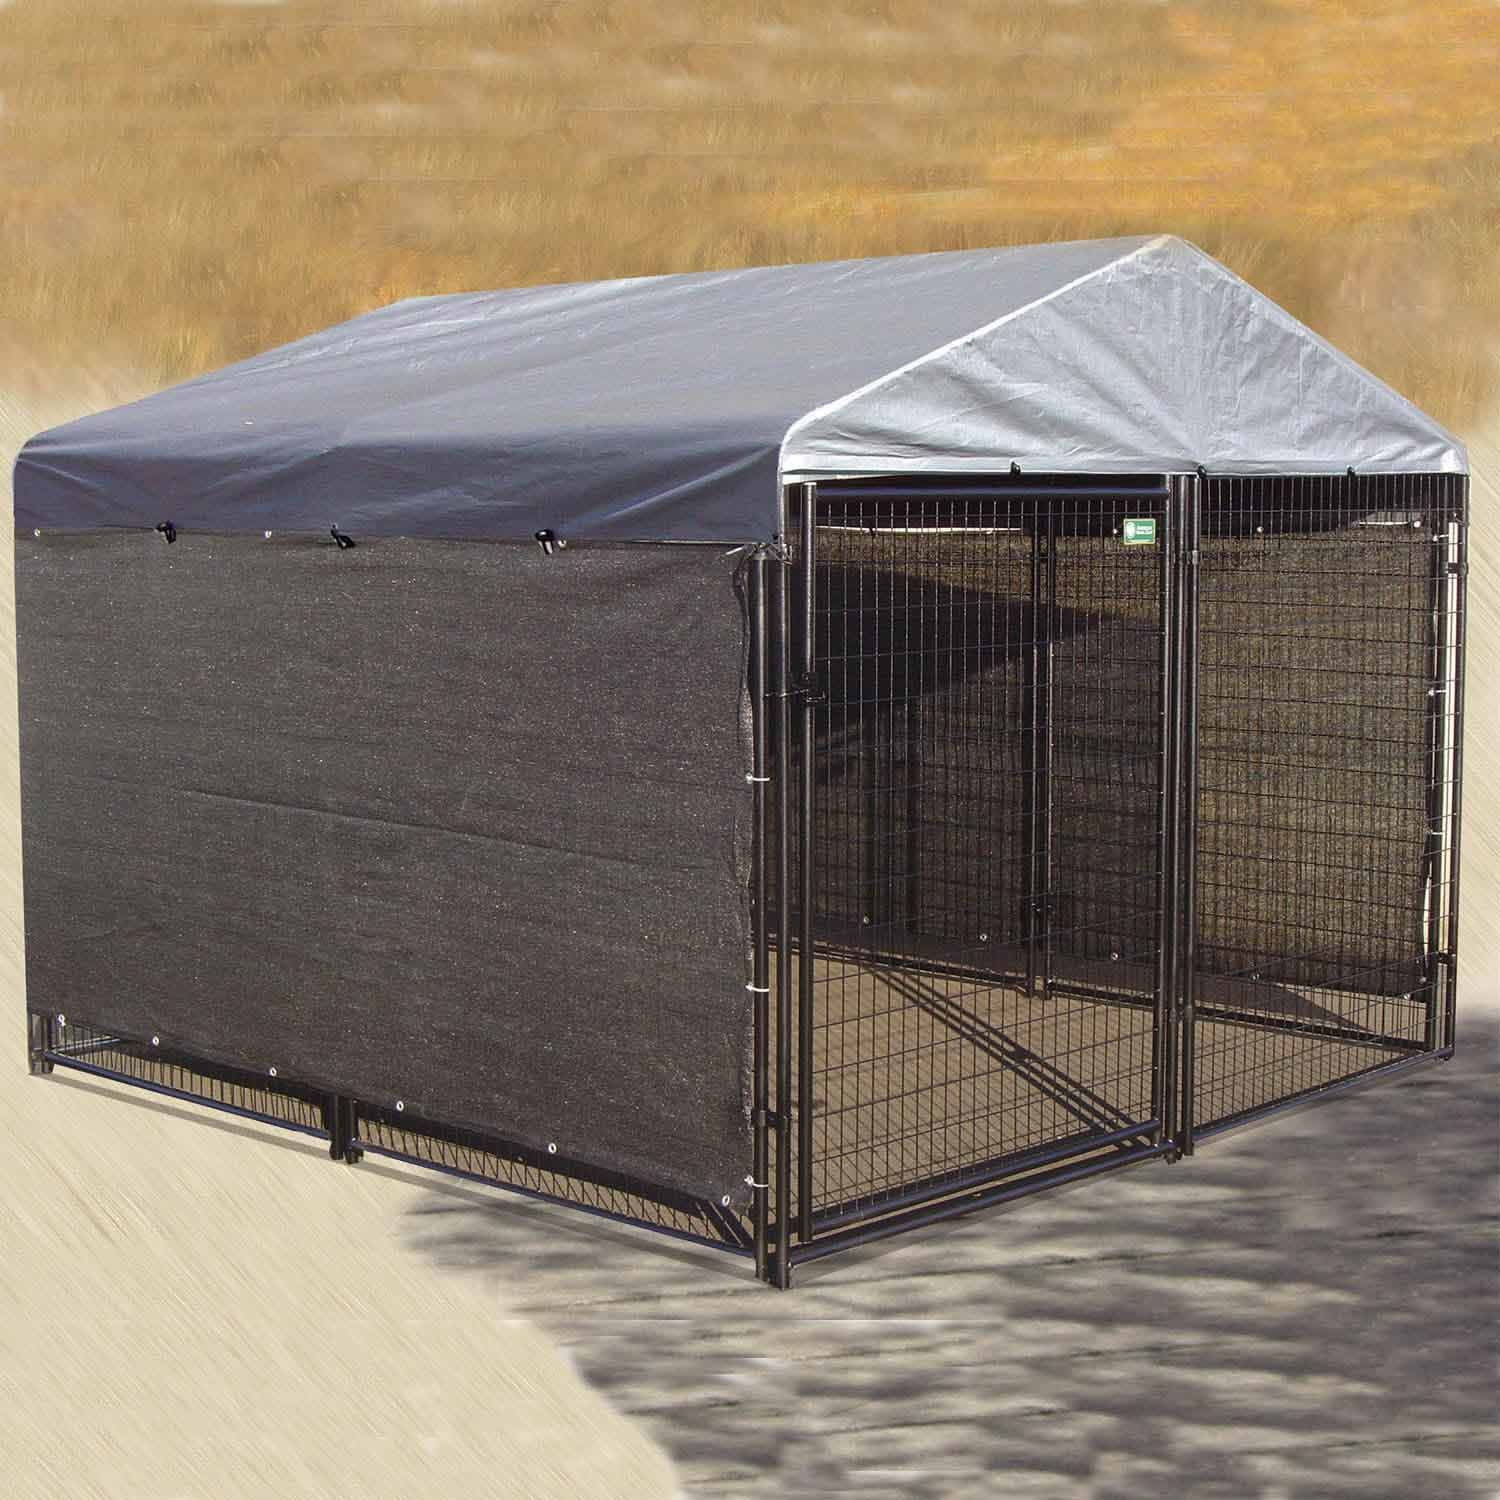 The Lucky Dog Heavy Duty Shade Cloth Helps Protect Your Pet From Wind Snow And Rain Heavy Duty Construction With Bras Dog Kennel Dog Spaces Dog Kennel Cover